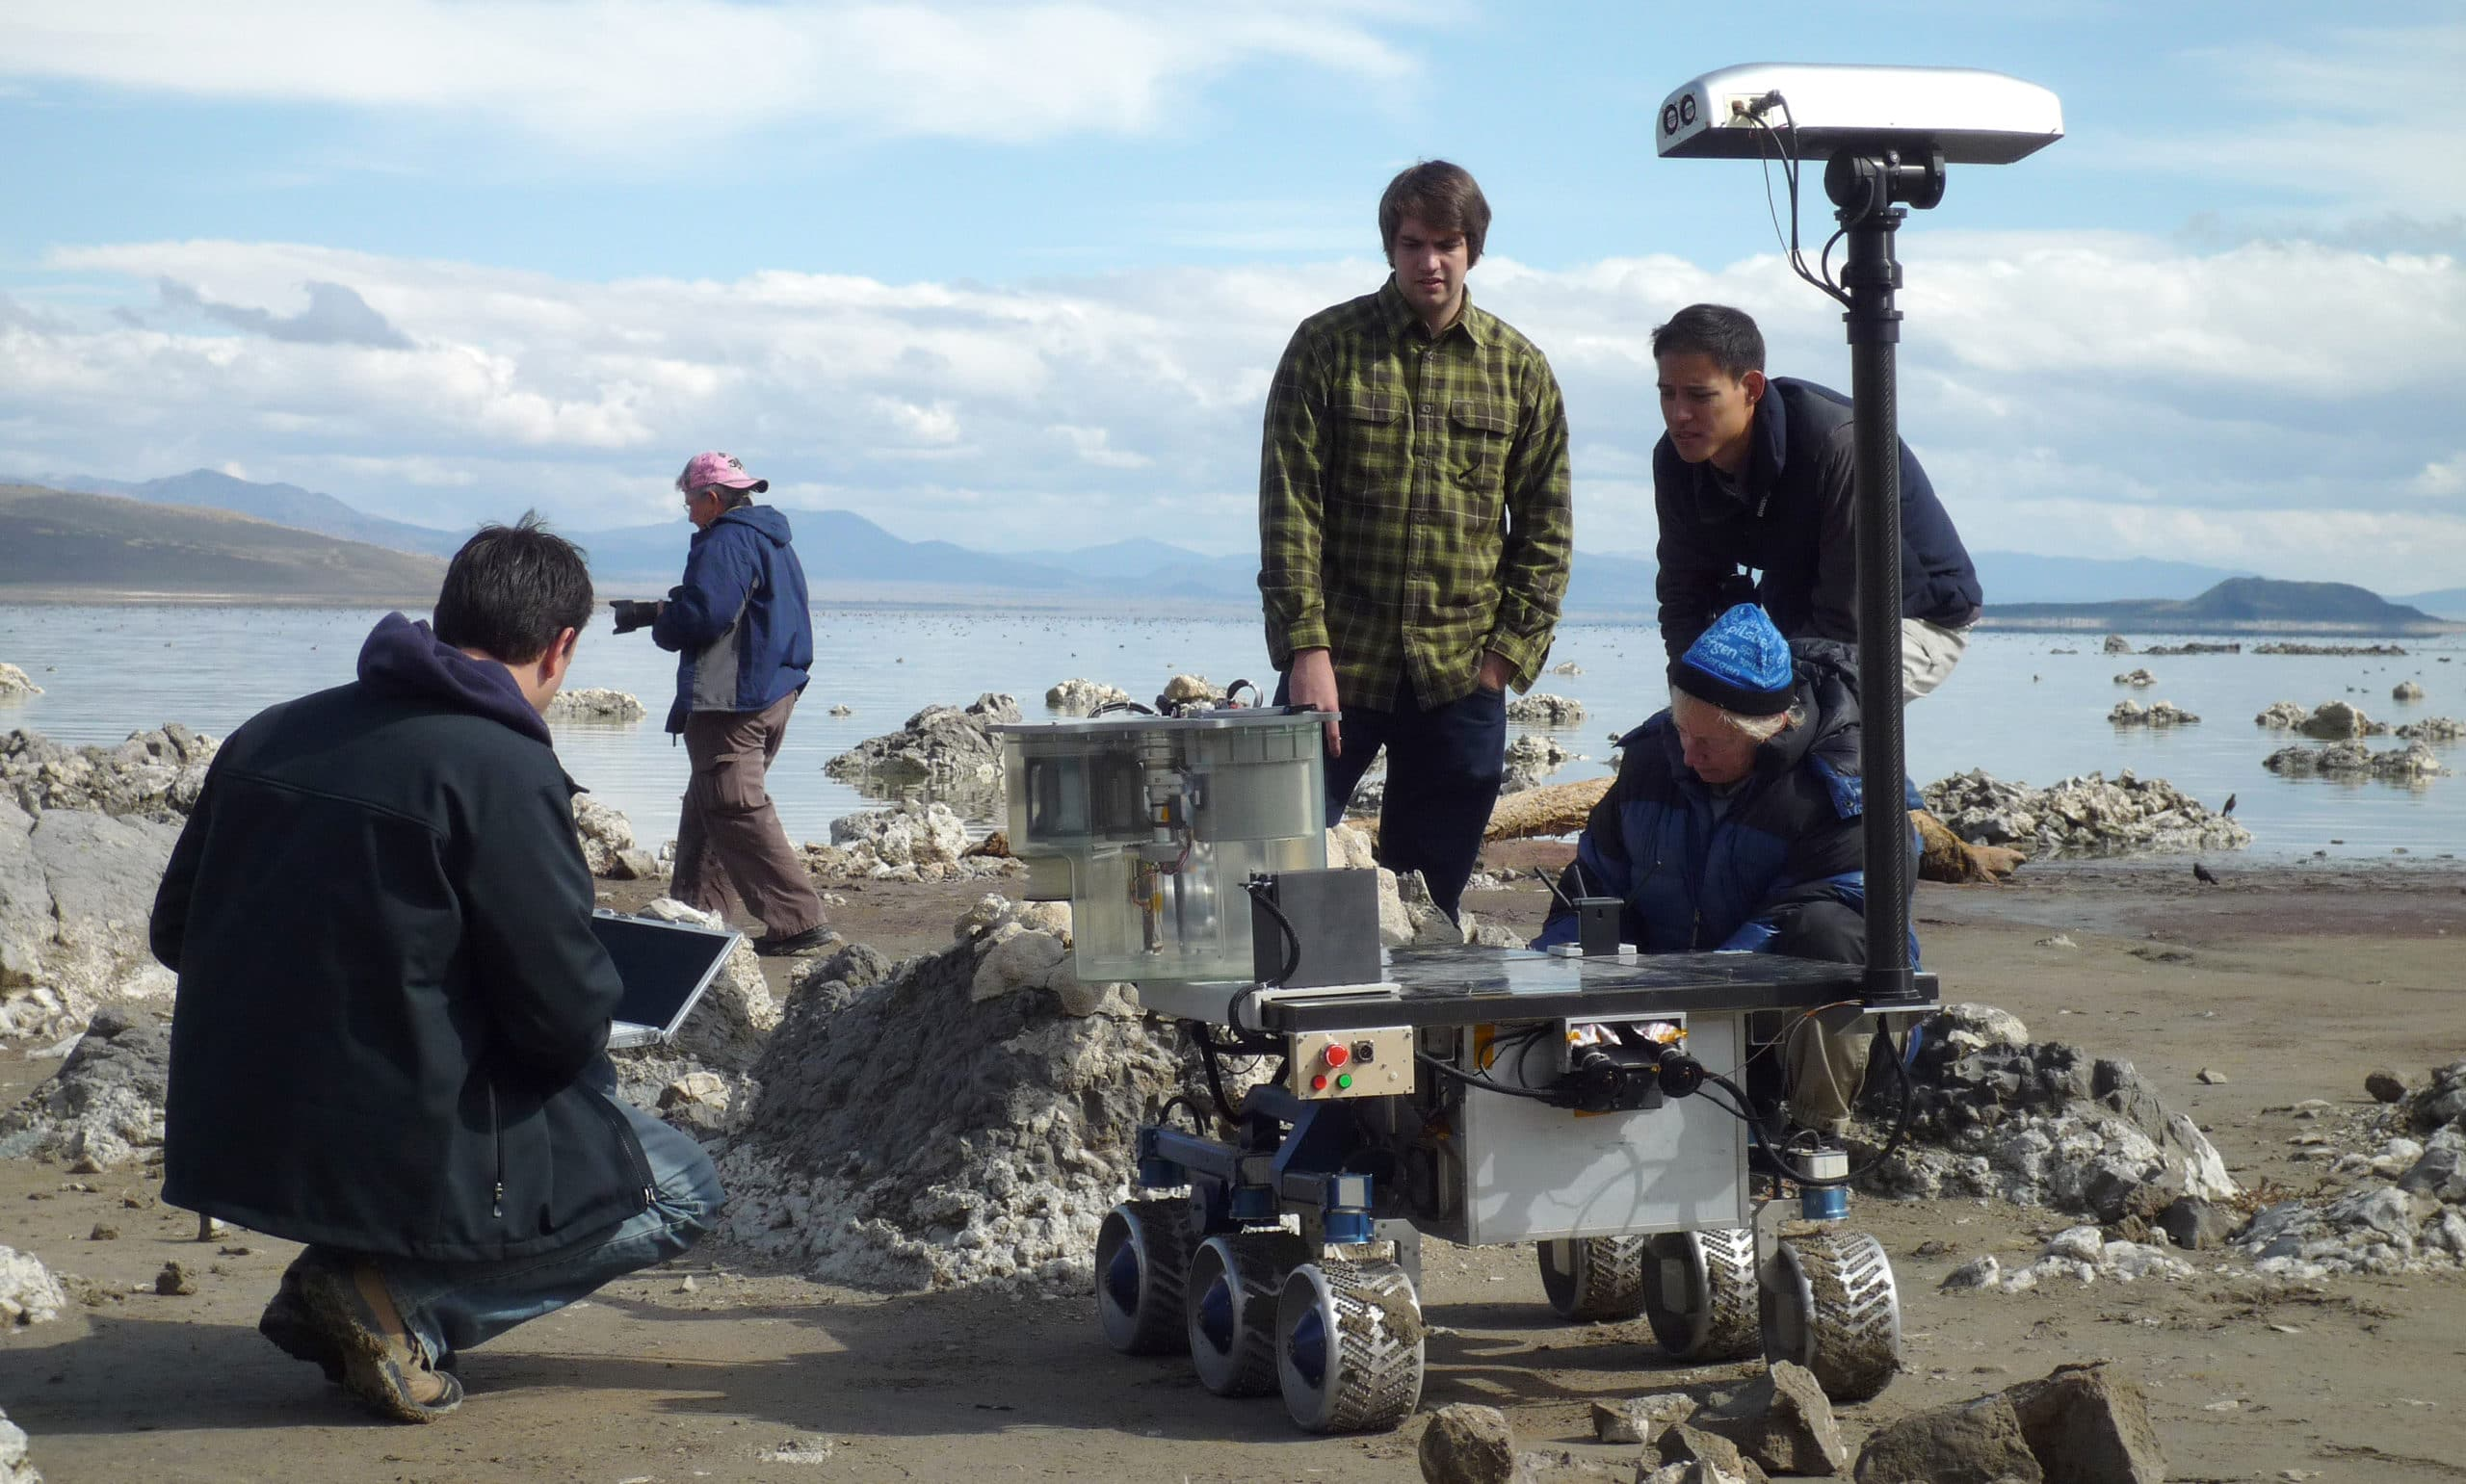 Four people on the shore of Mono Lake watching a prototype of the Mars Rover, a rolling platform with six wheels and various instrumentation, as it approaches a tufa mound.